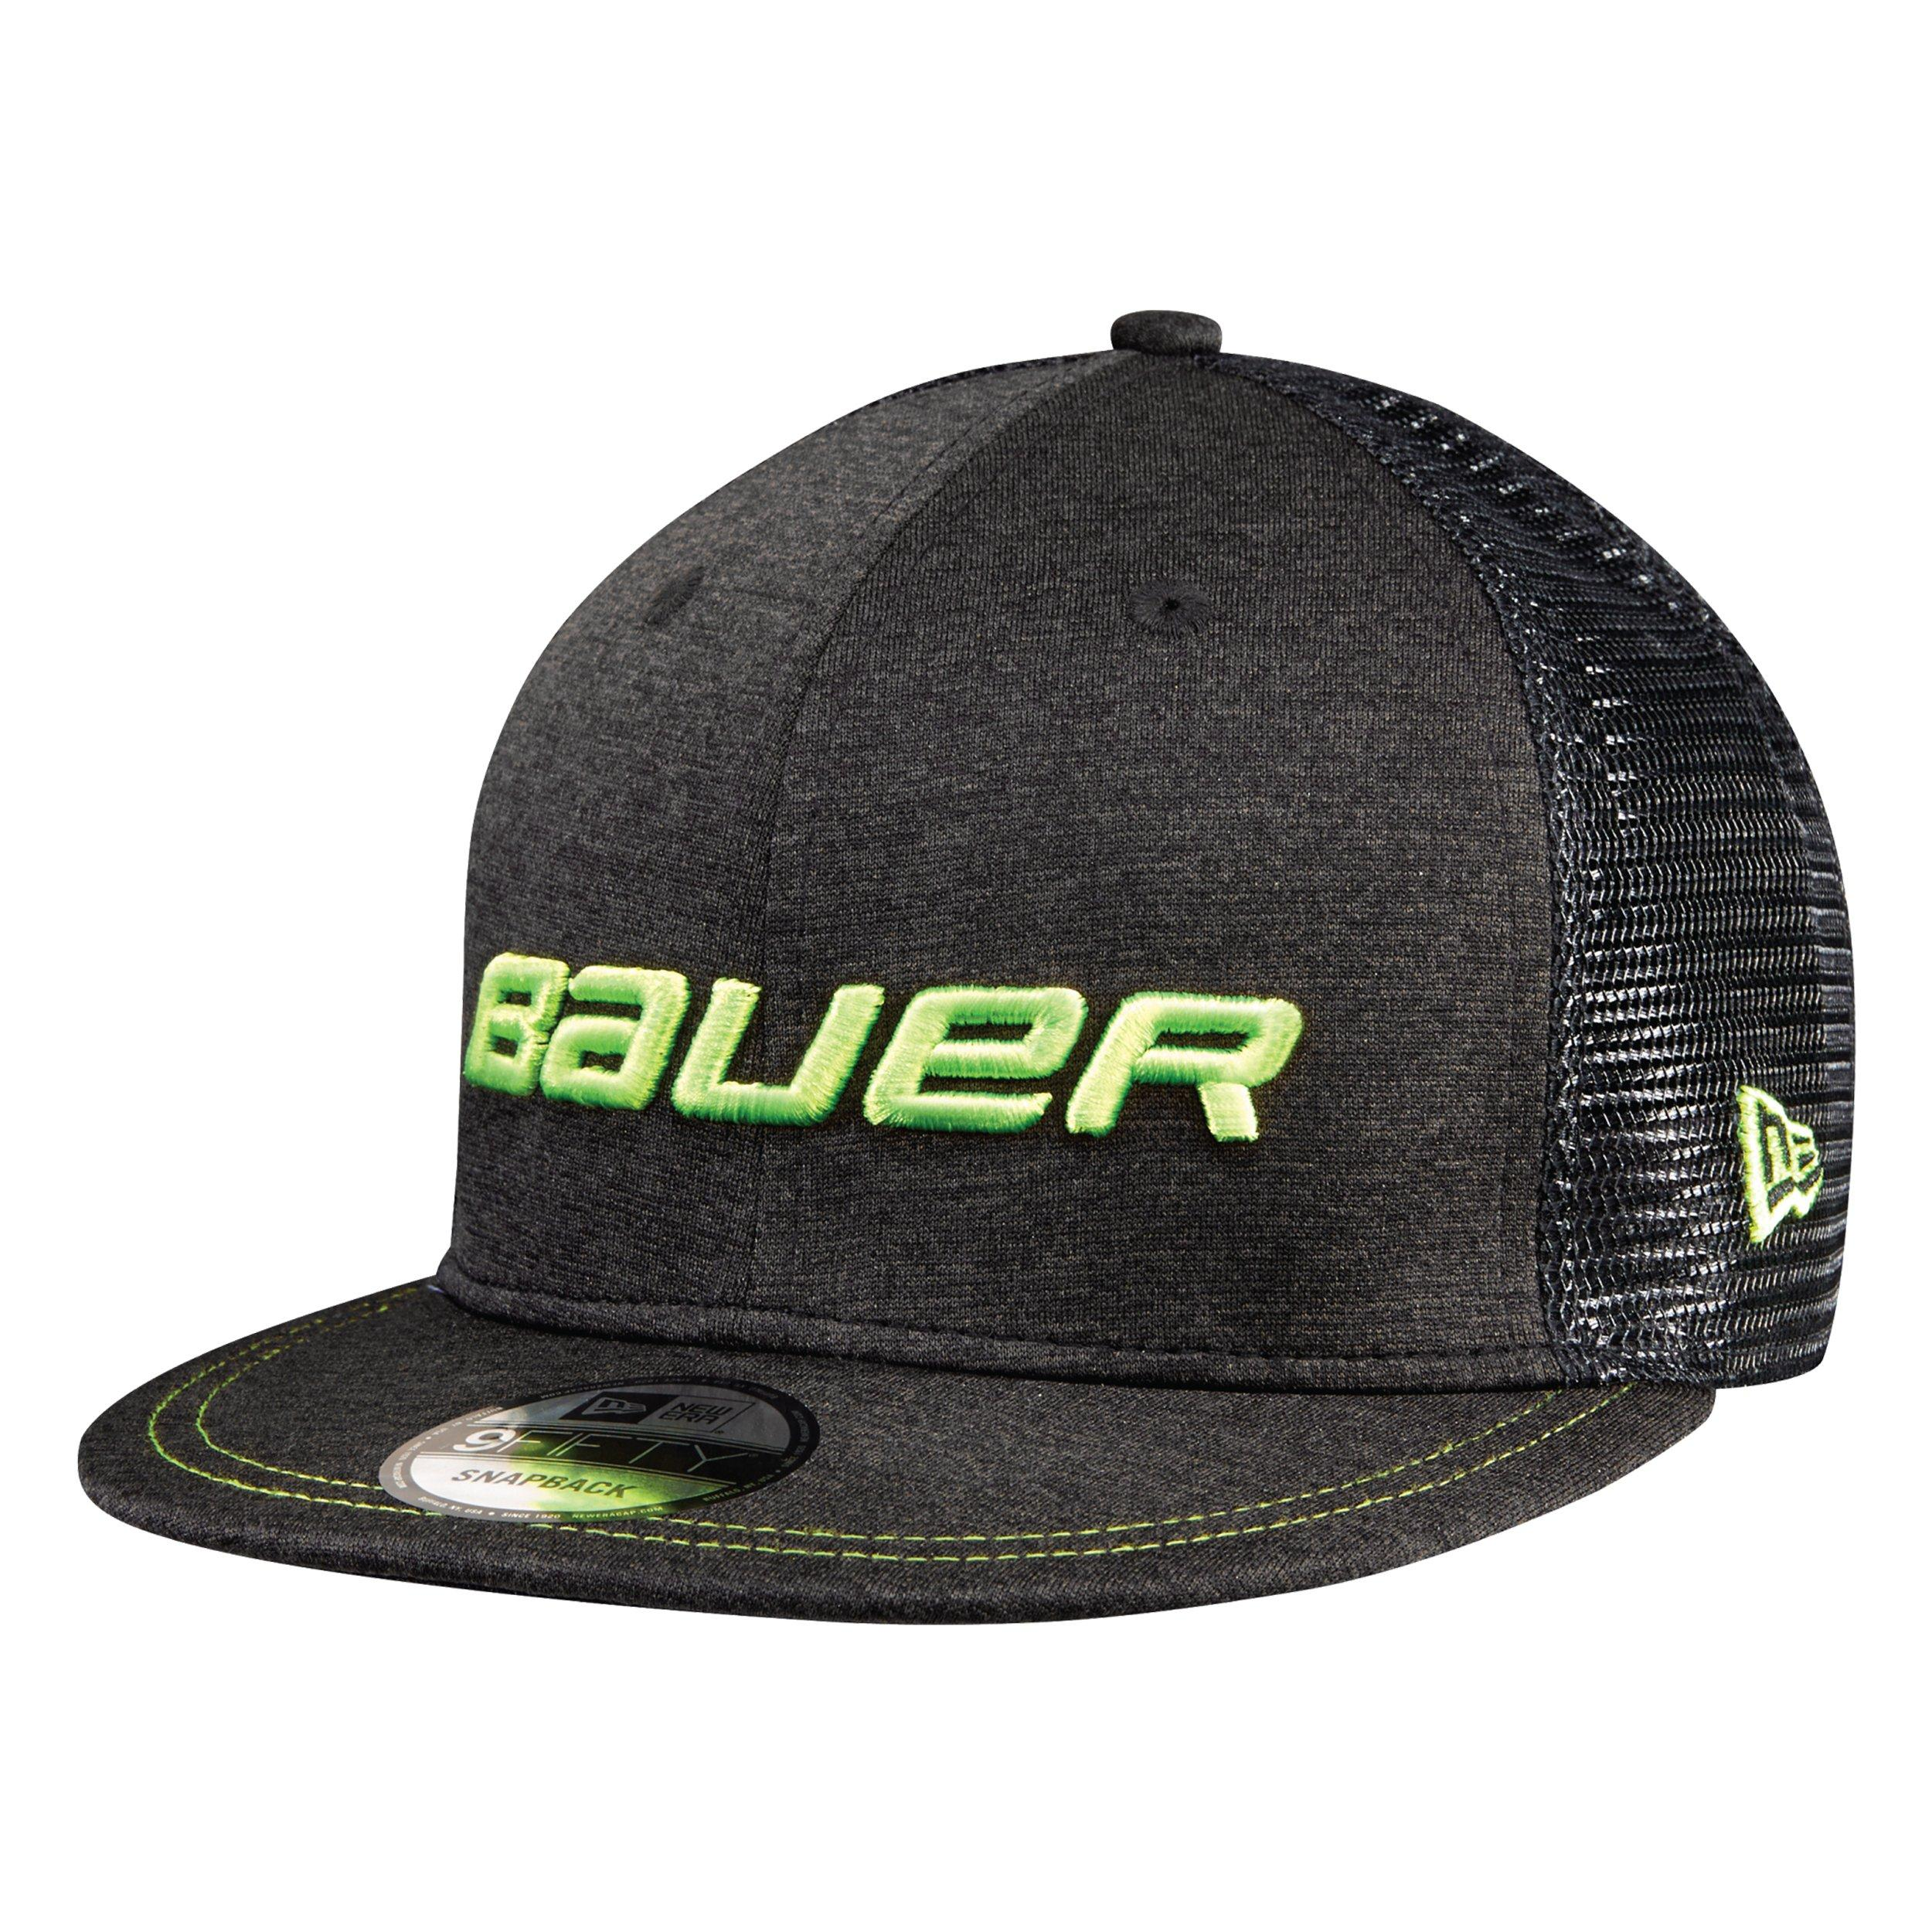 BAUER / New Era® 9FIFTY® Color Pop Adjustable Cap Senior